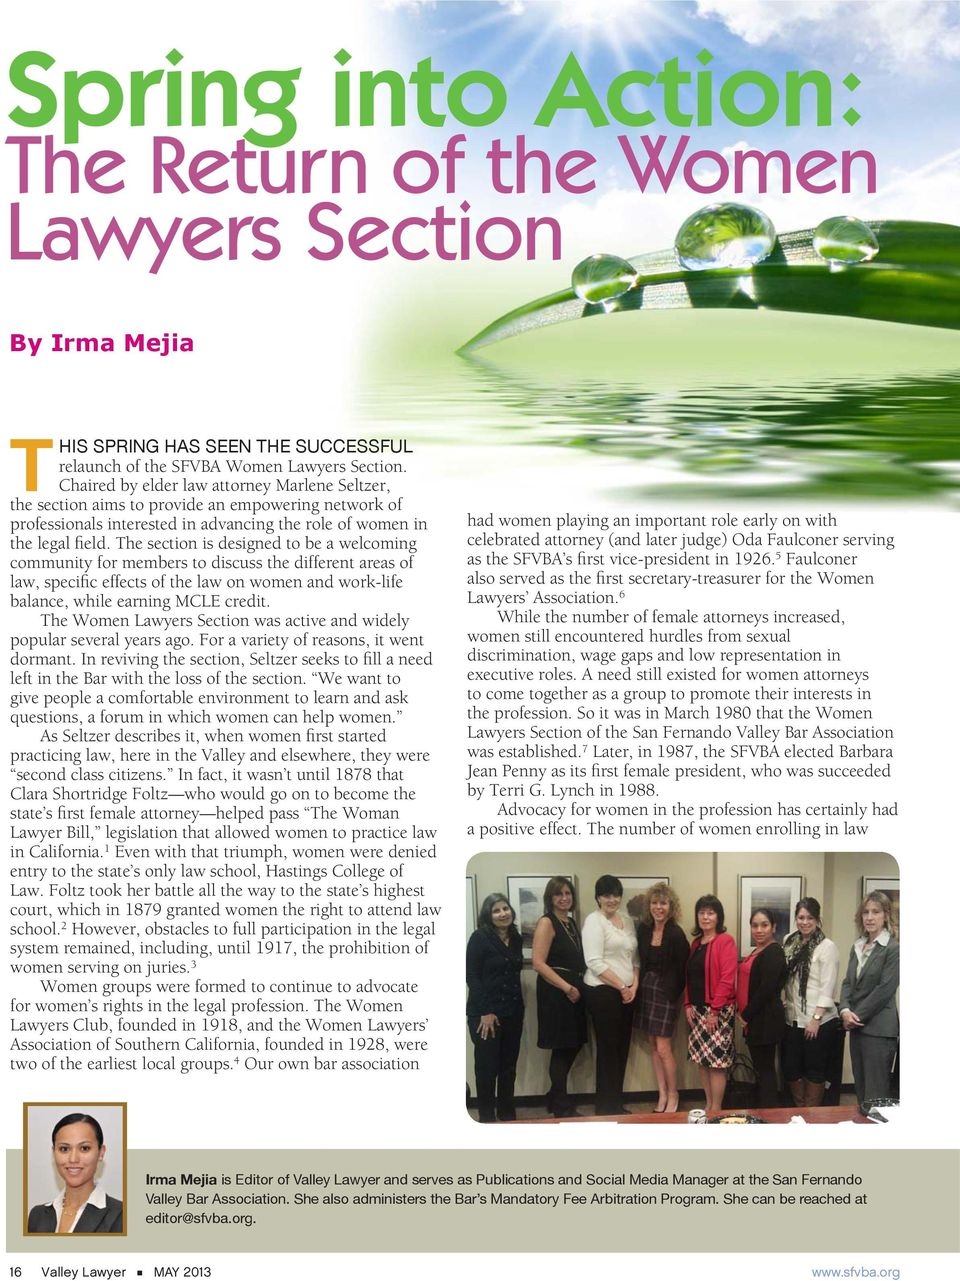 The section is designed to be a welcoming community for members to discuss the different areas of law, specific effects of the law on women and work-life balance, while earning MCLE credit.